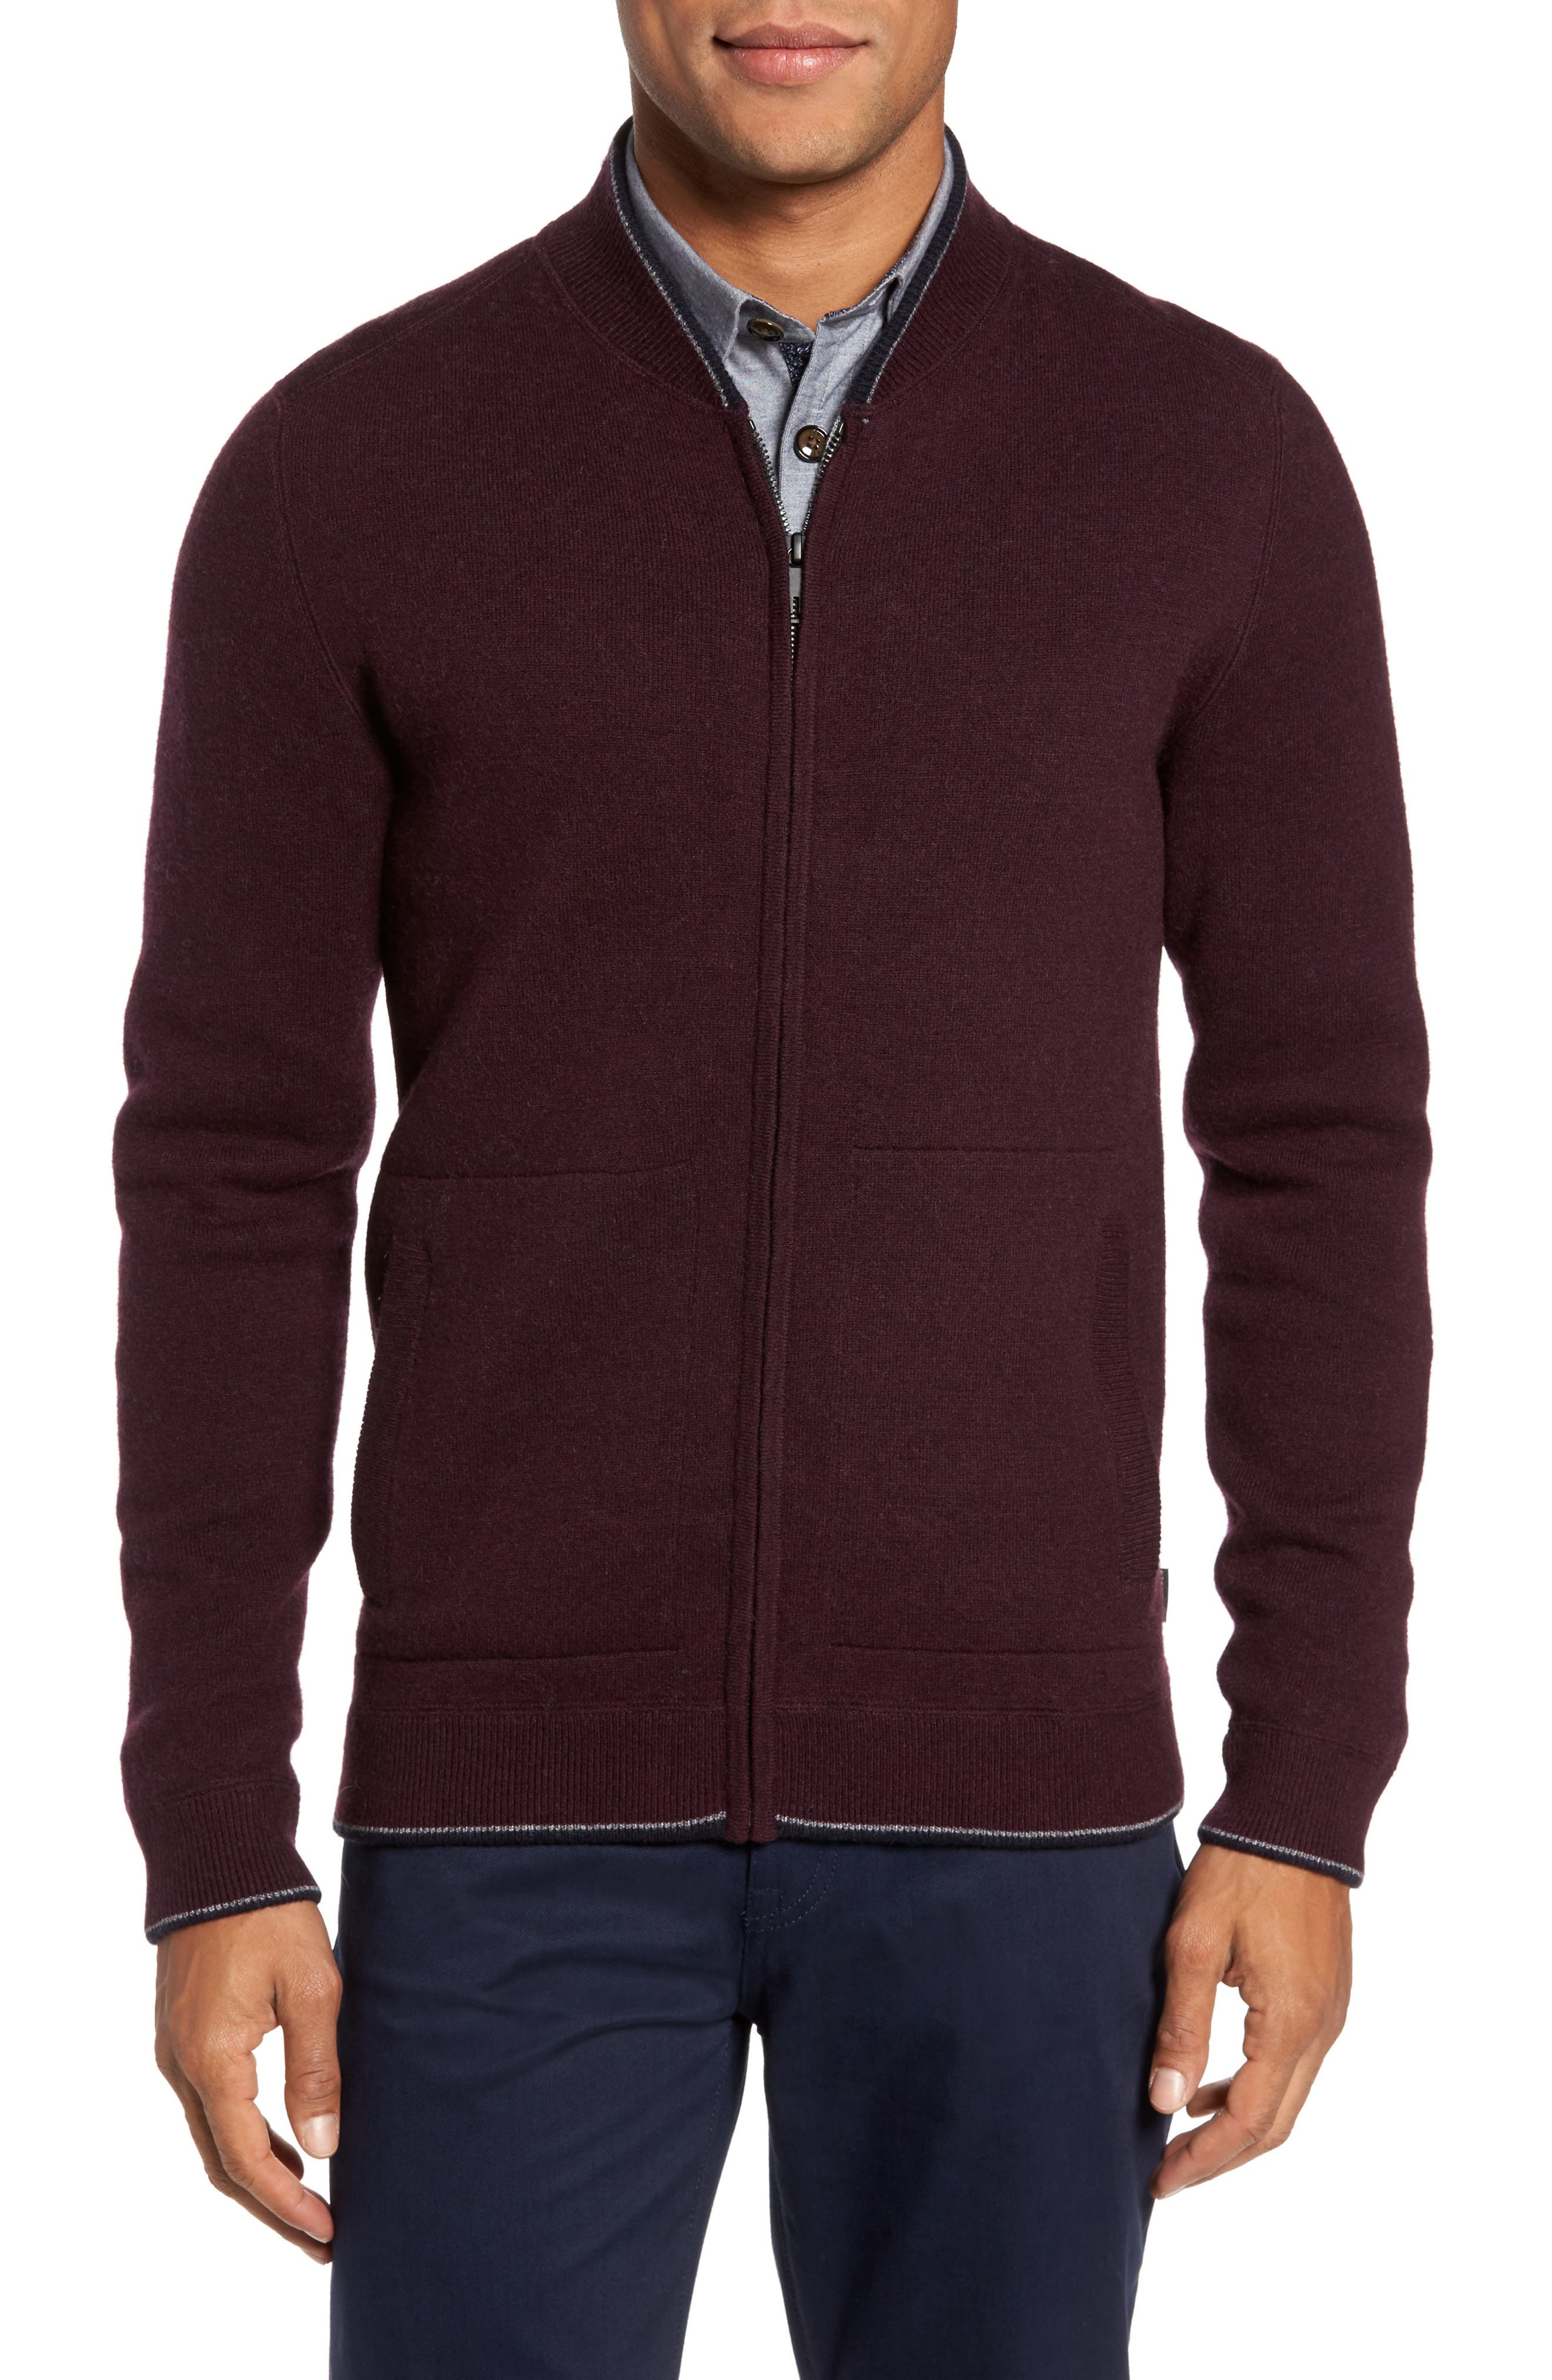 Main Image - Ted Baker London Merino Wool Baseball Sweater